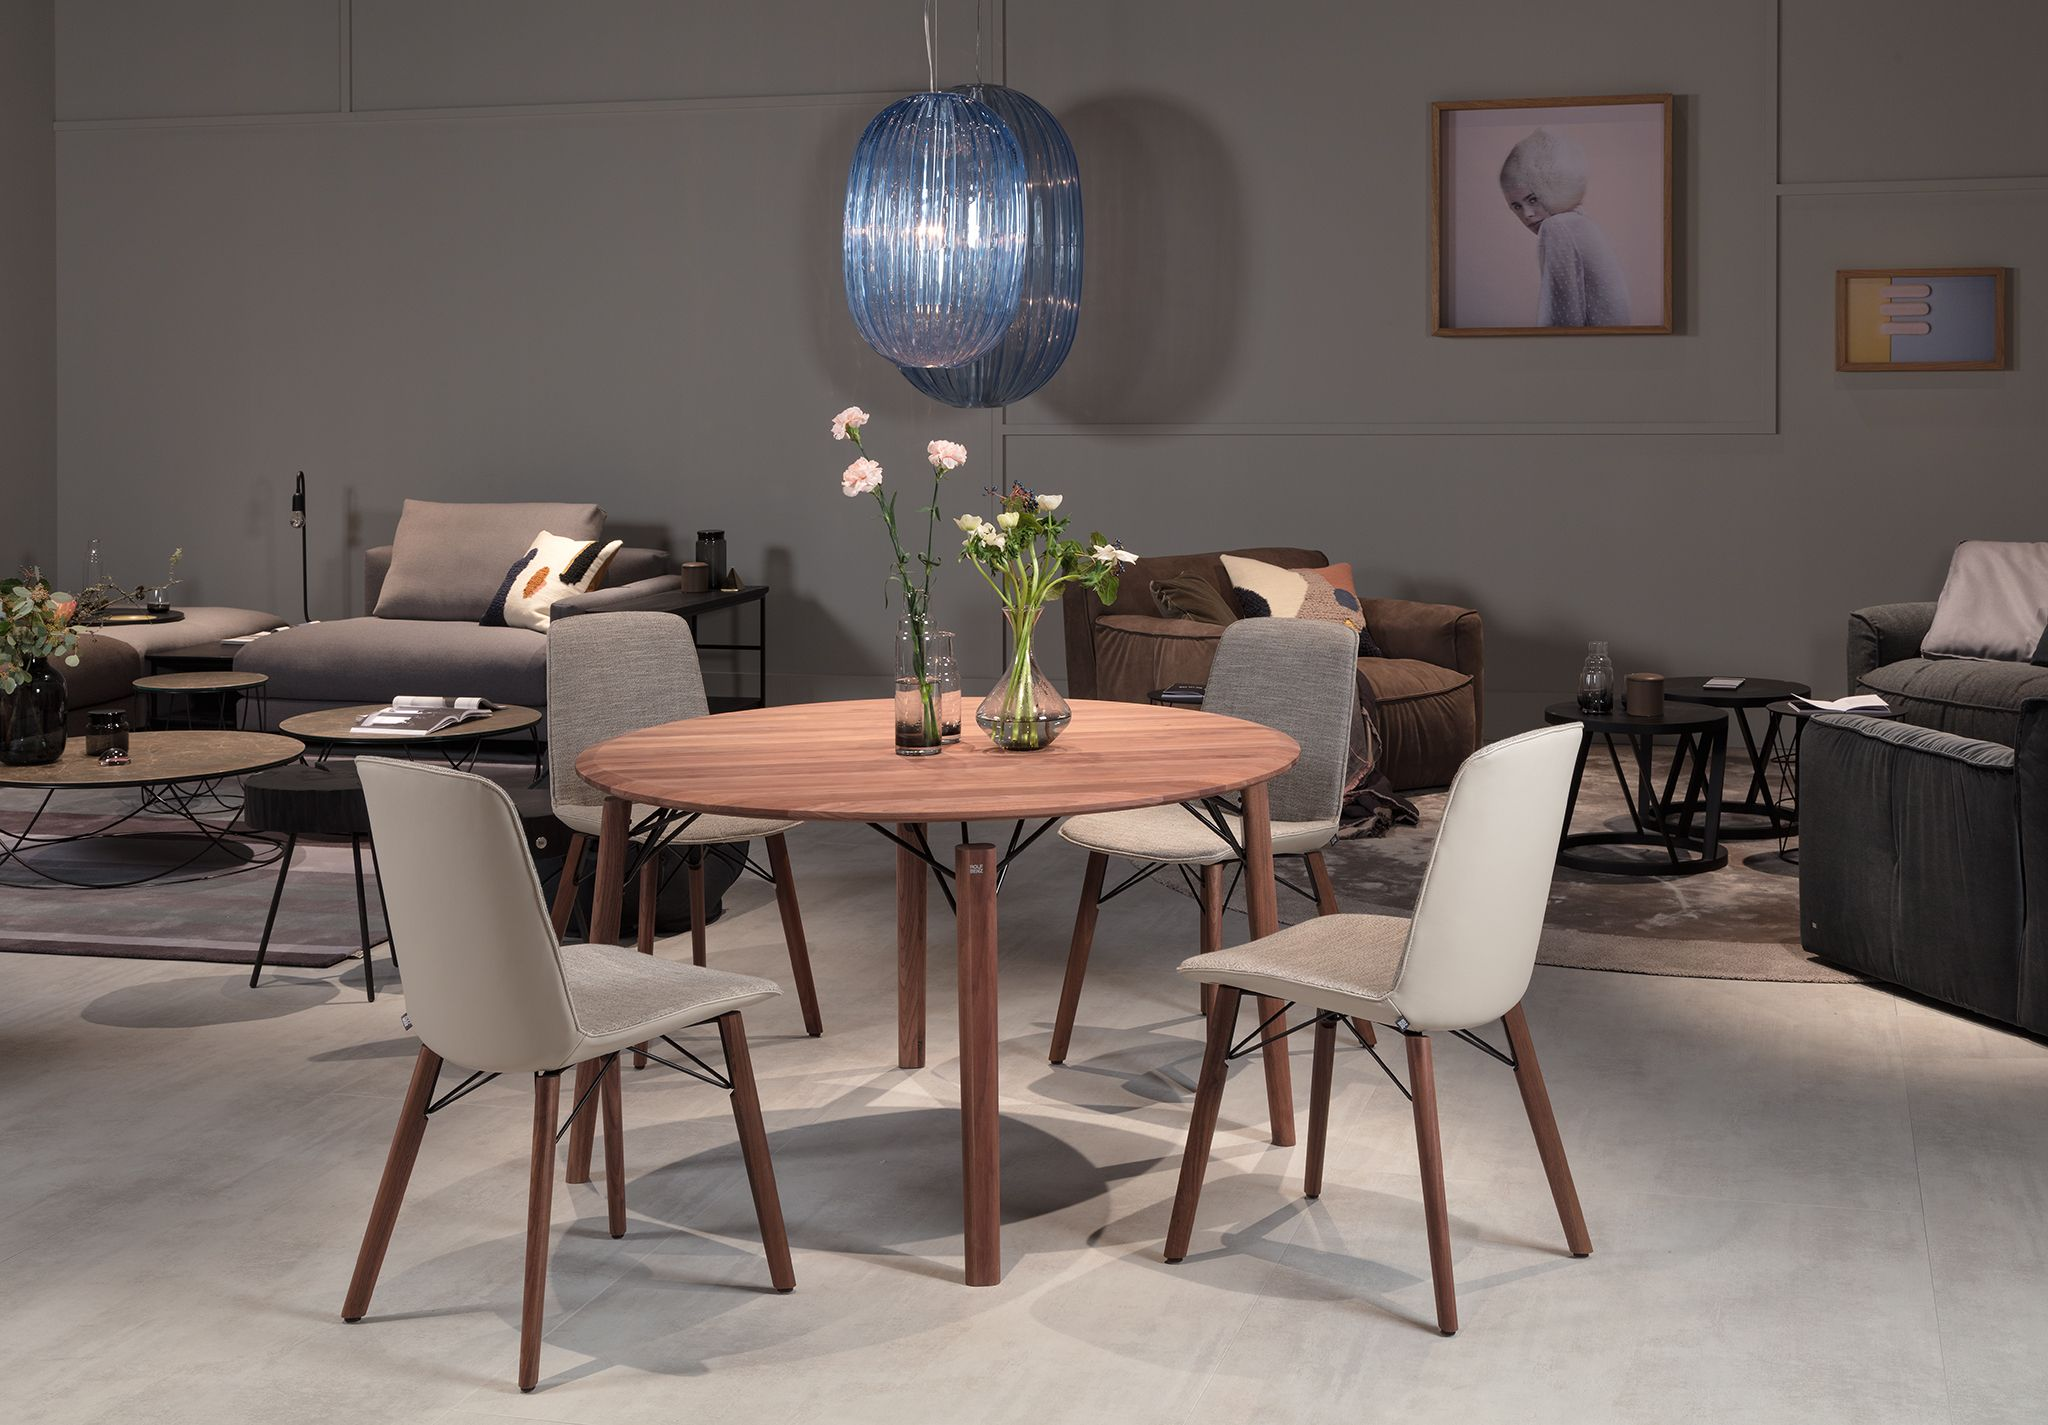 New Dining Table And Chairs From Rolf Benz 964 Table And 616